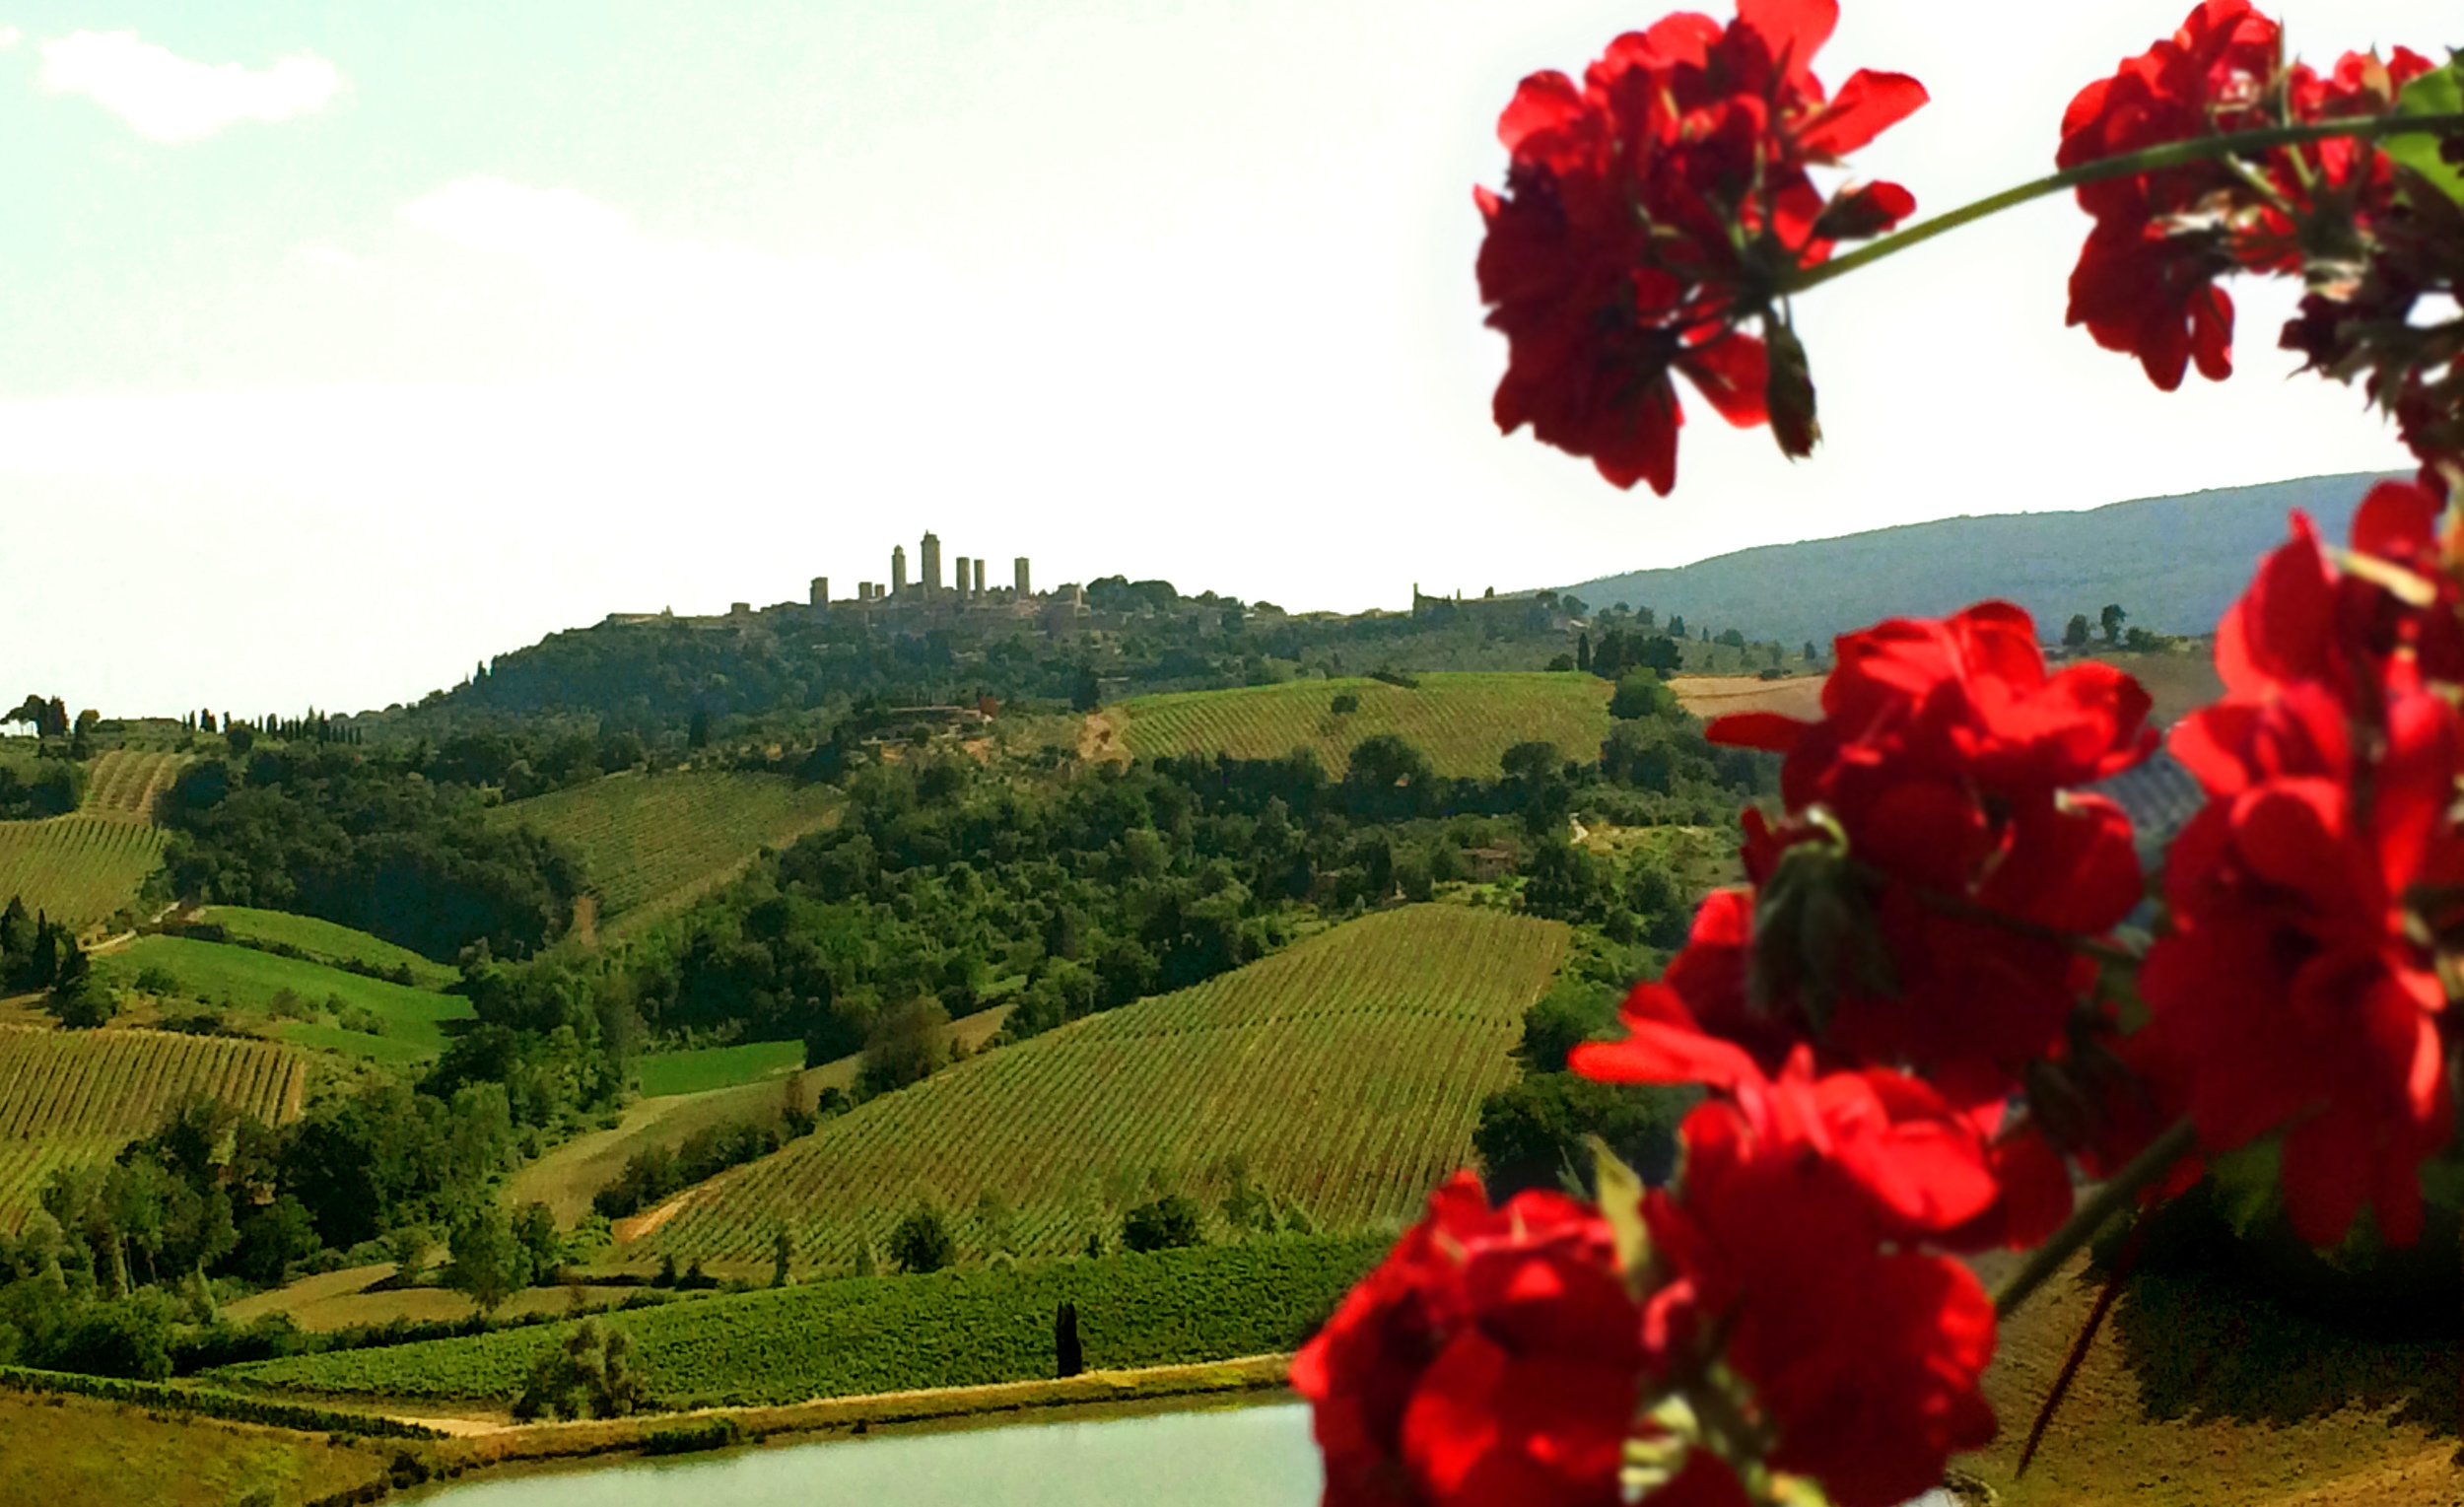 A view of San Gimignano